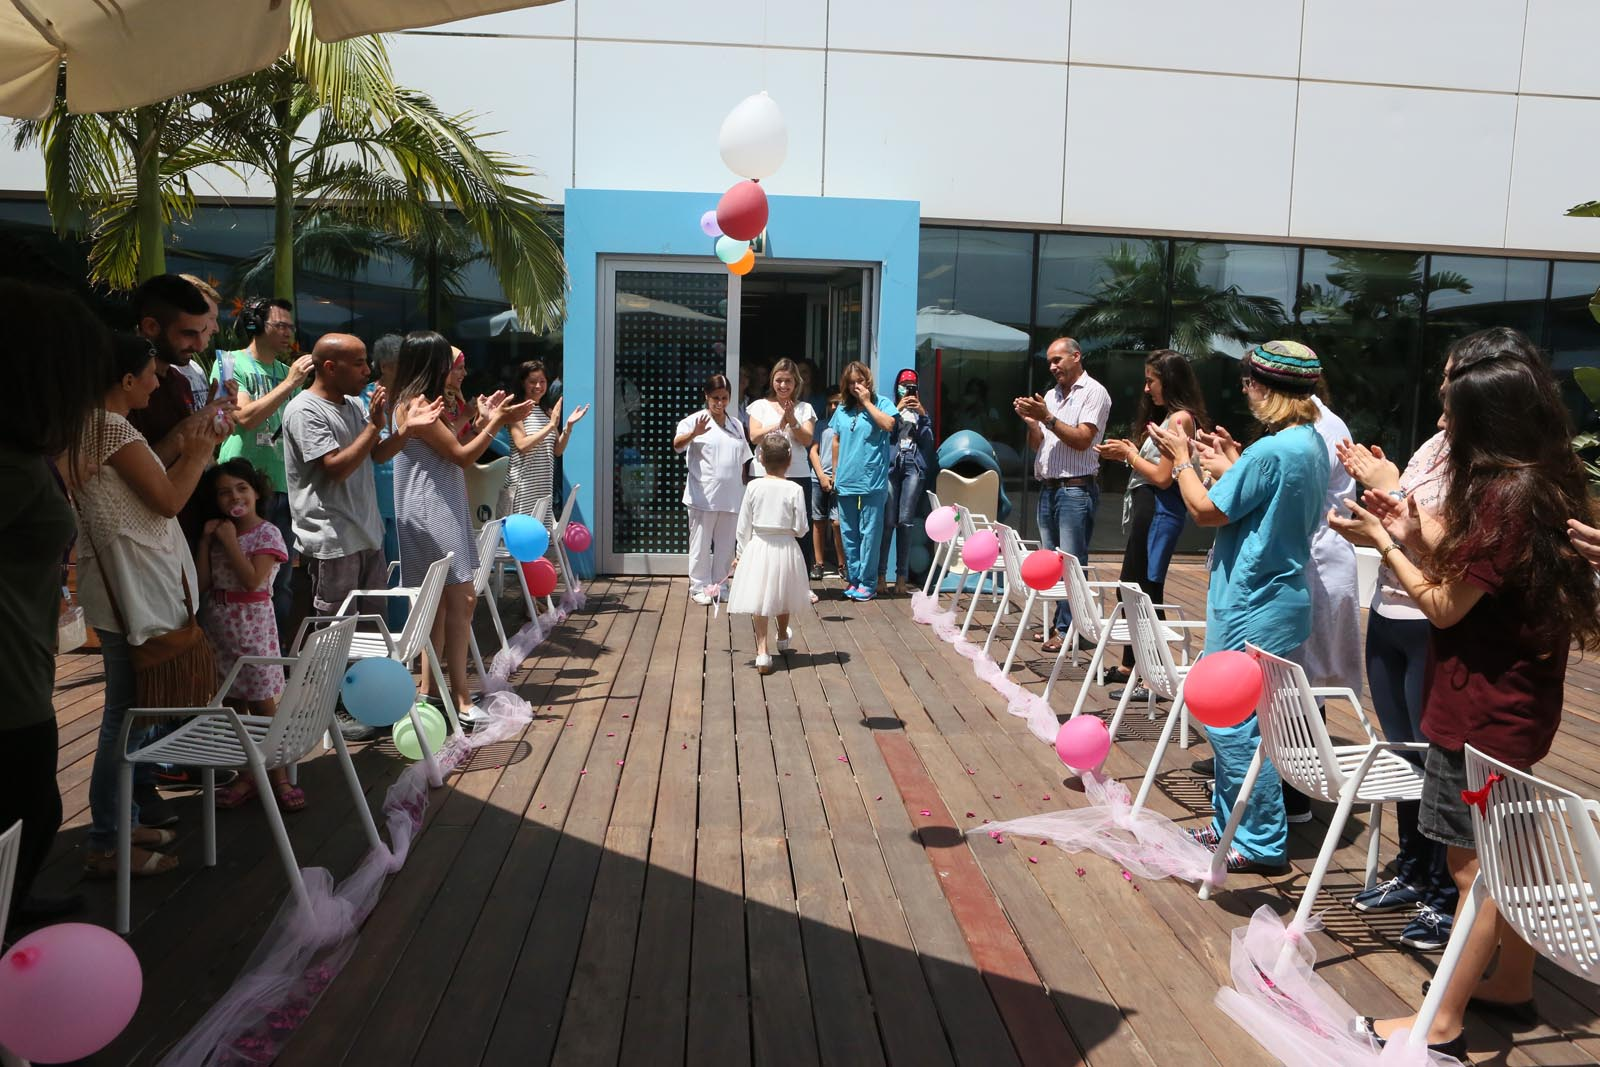 A farewell party celebrating Syrian cancer survivor's discharge seven months after she first arrived at the Ruth Rappaport Children's Hospital in Rambam Health Care Campus. Photo courtesy